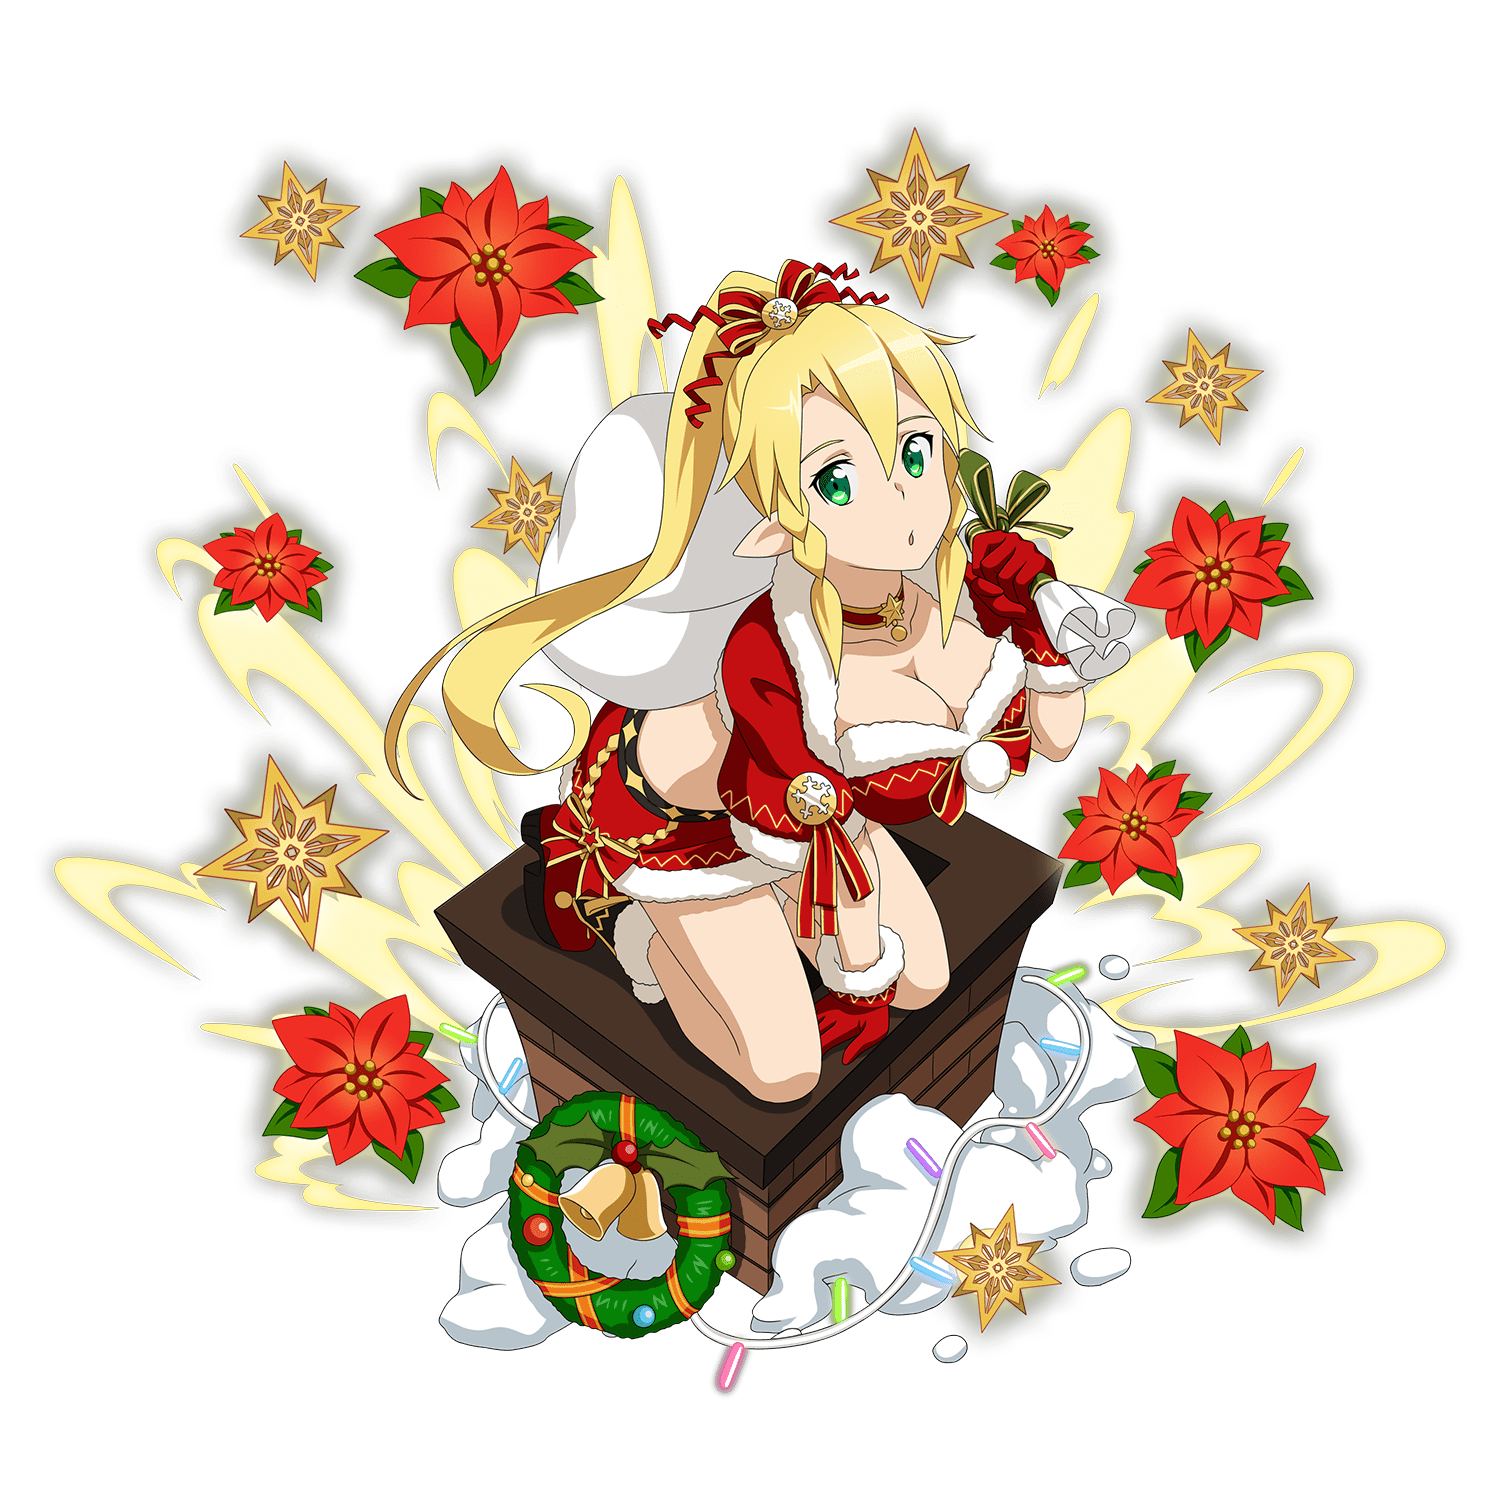 Games clipart chinese garter. Visitor in snow leafa